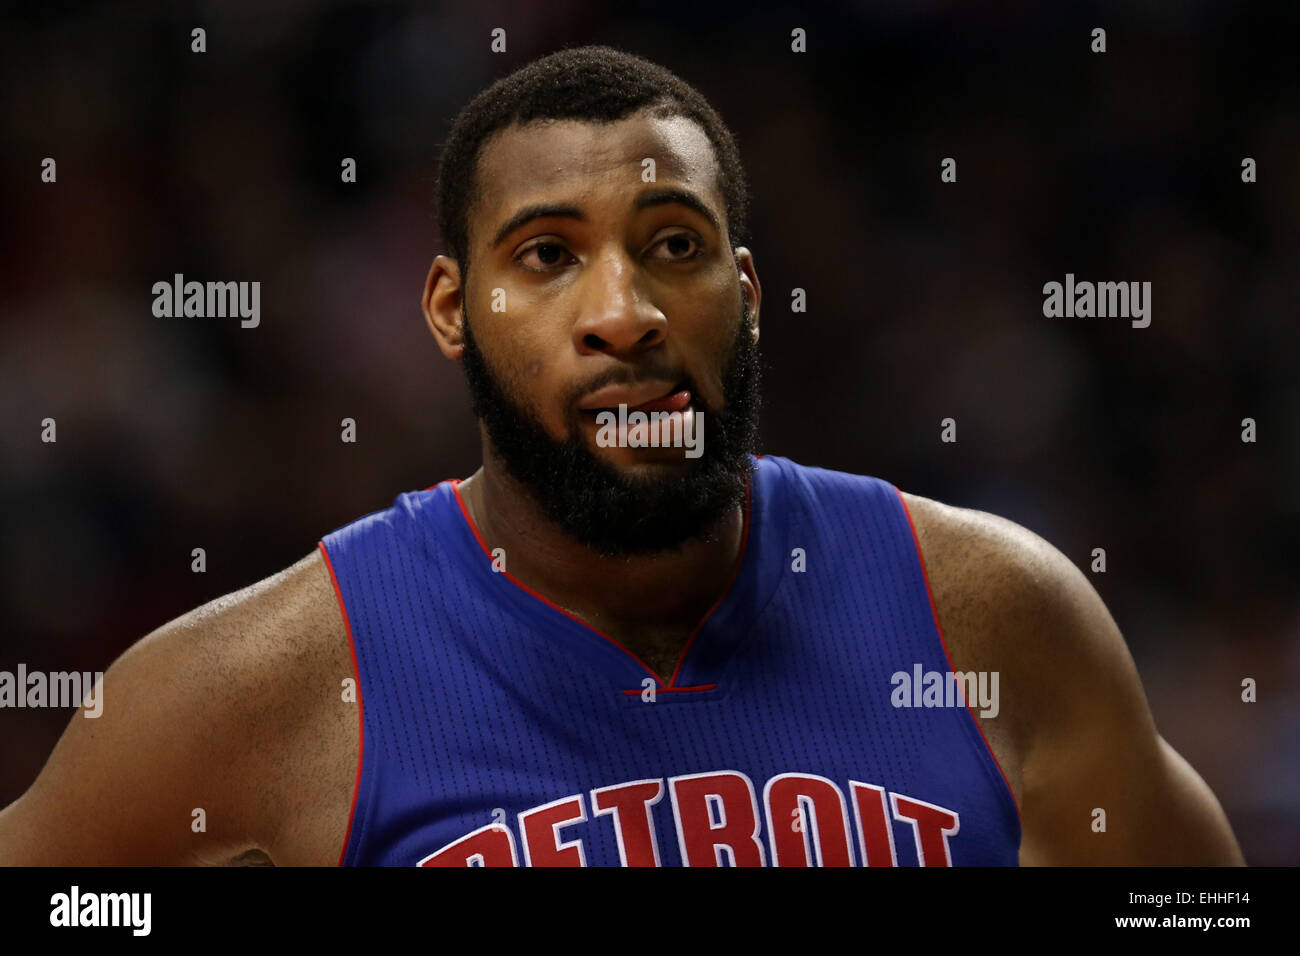 March 13, 2015 - ANDRE DRUMMOND (0) looks on during a timeout. The Portland Trail Blazers play the Detroit Pistons Stock Photo